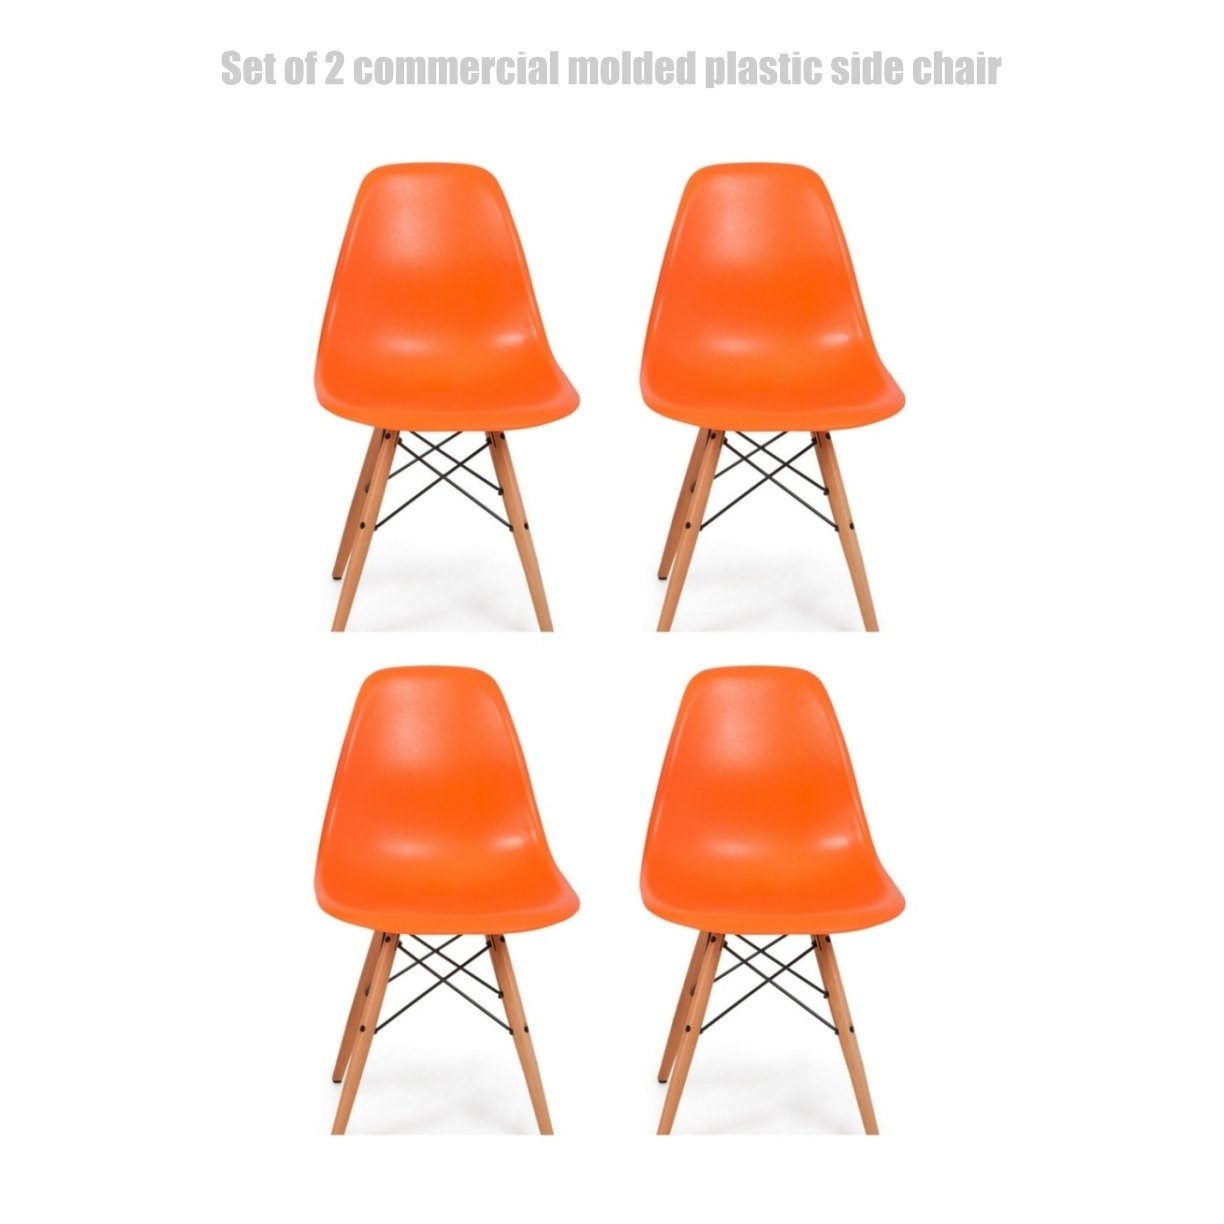 Classic Vintage Style Dining Chair Molded Plastic Flexible Backs Support Deep Seat Pockets Straight Wooden Dowel Legs Innovative Side Chair - Set of 4 Orange #1445